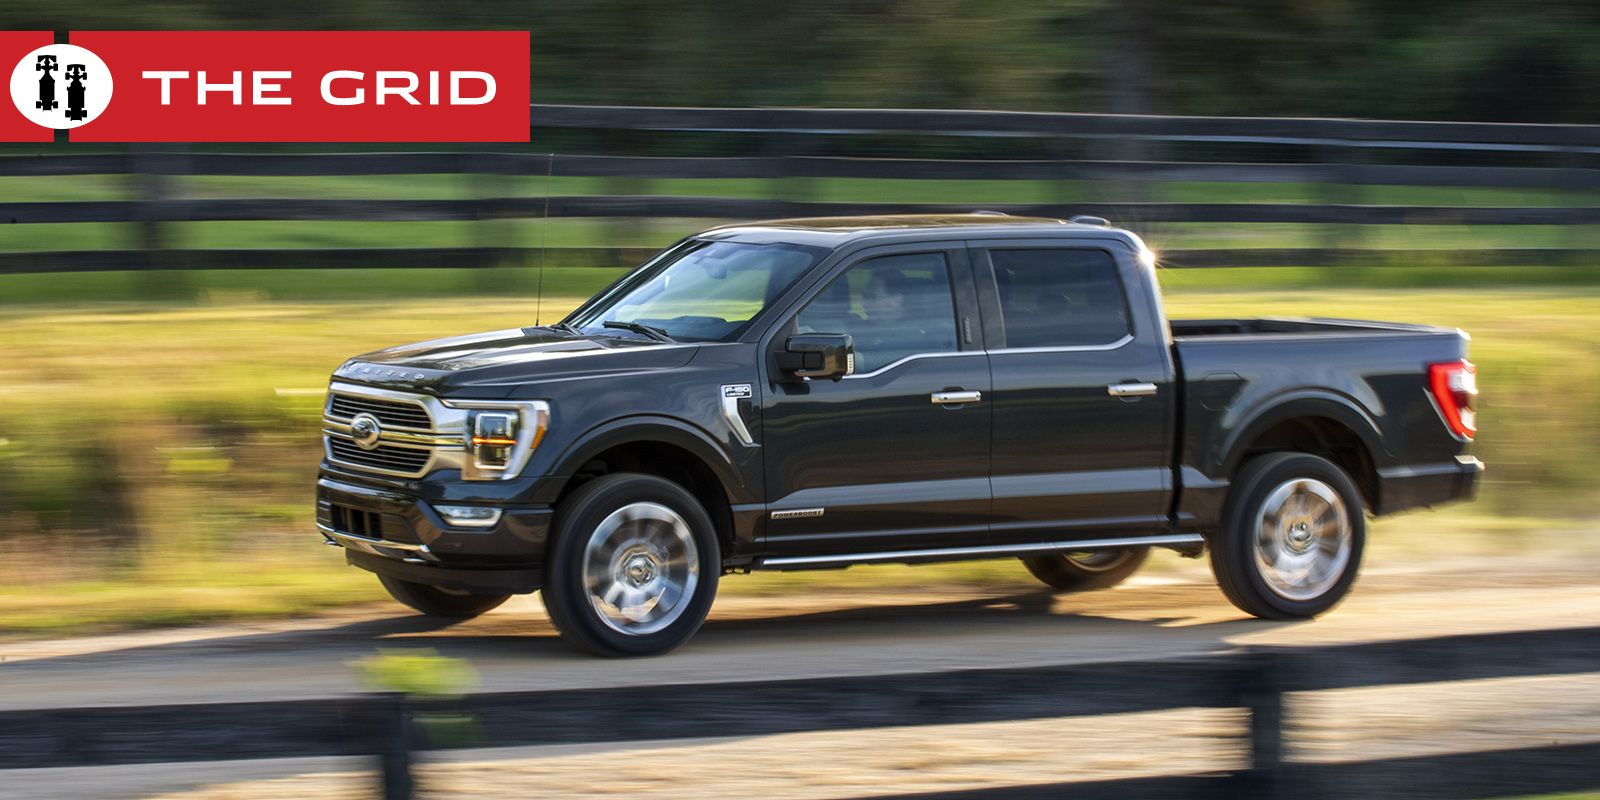 The 2021 Ford F-150 Hybrid Makes 430 HP and 570 LB-FT